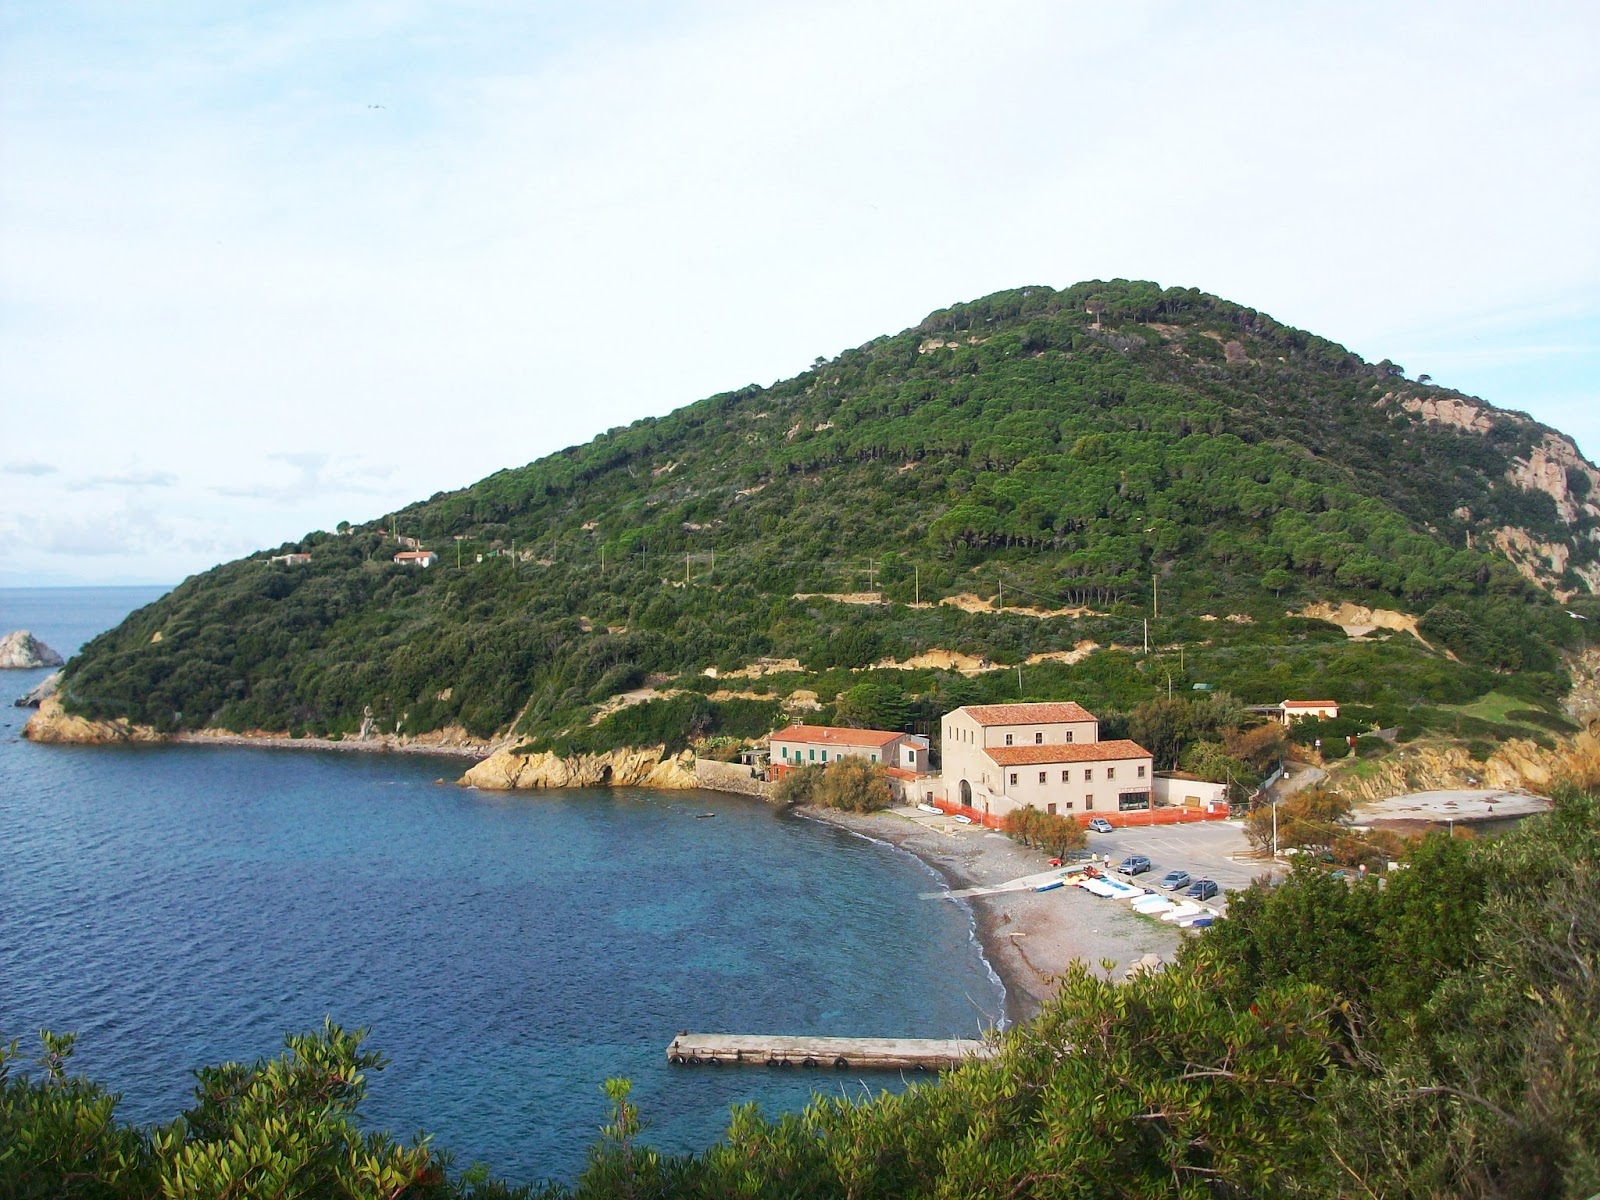 isola d'elba - photo #21